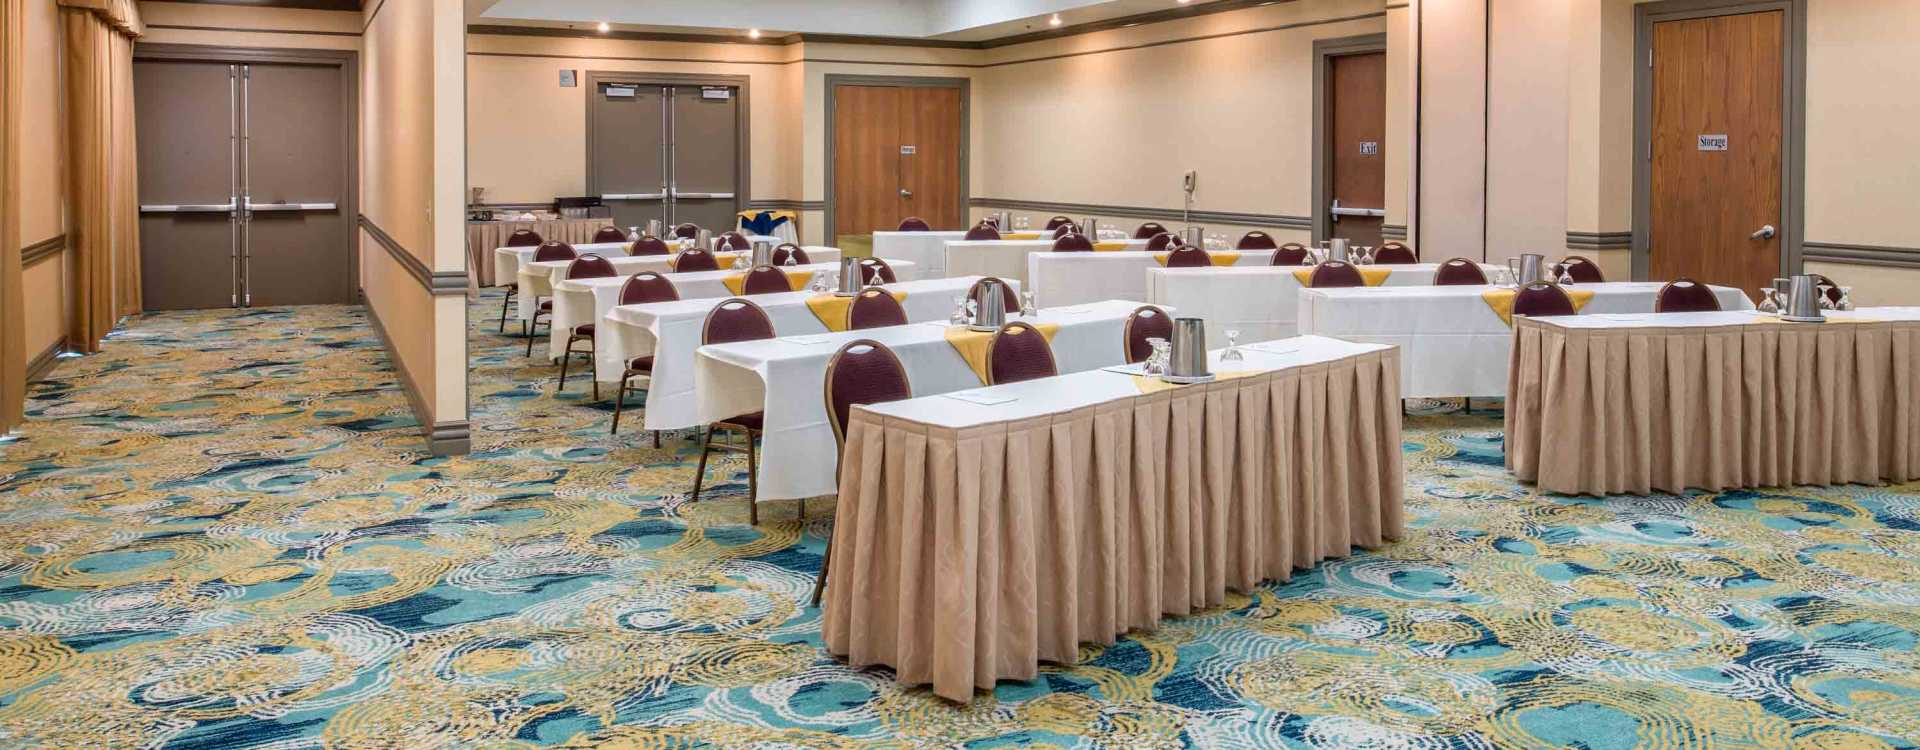 meeting-facility-Embassy_Suites_Seattle-Tacoma_International_Airport_Meeting_Facility-20.JPG